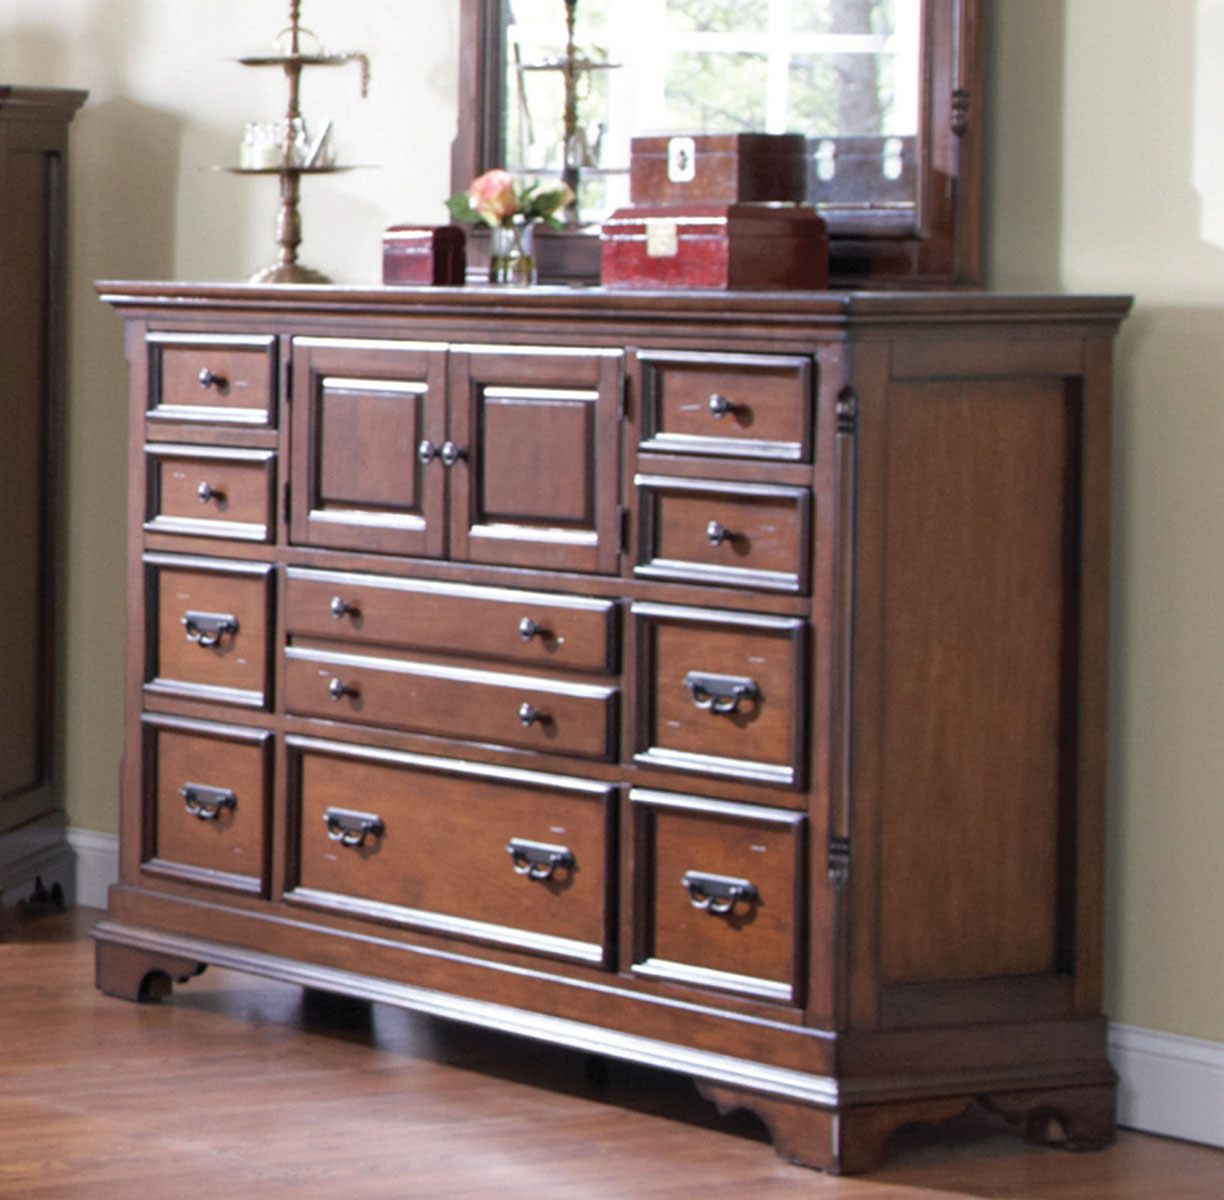 Coaster Savannah Dresser - Cherry